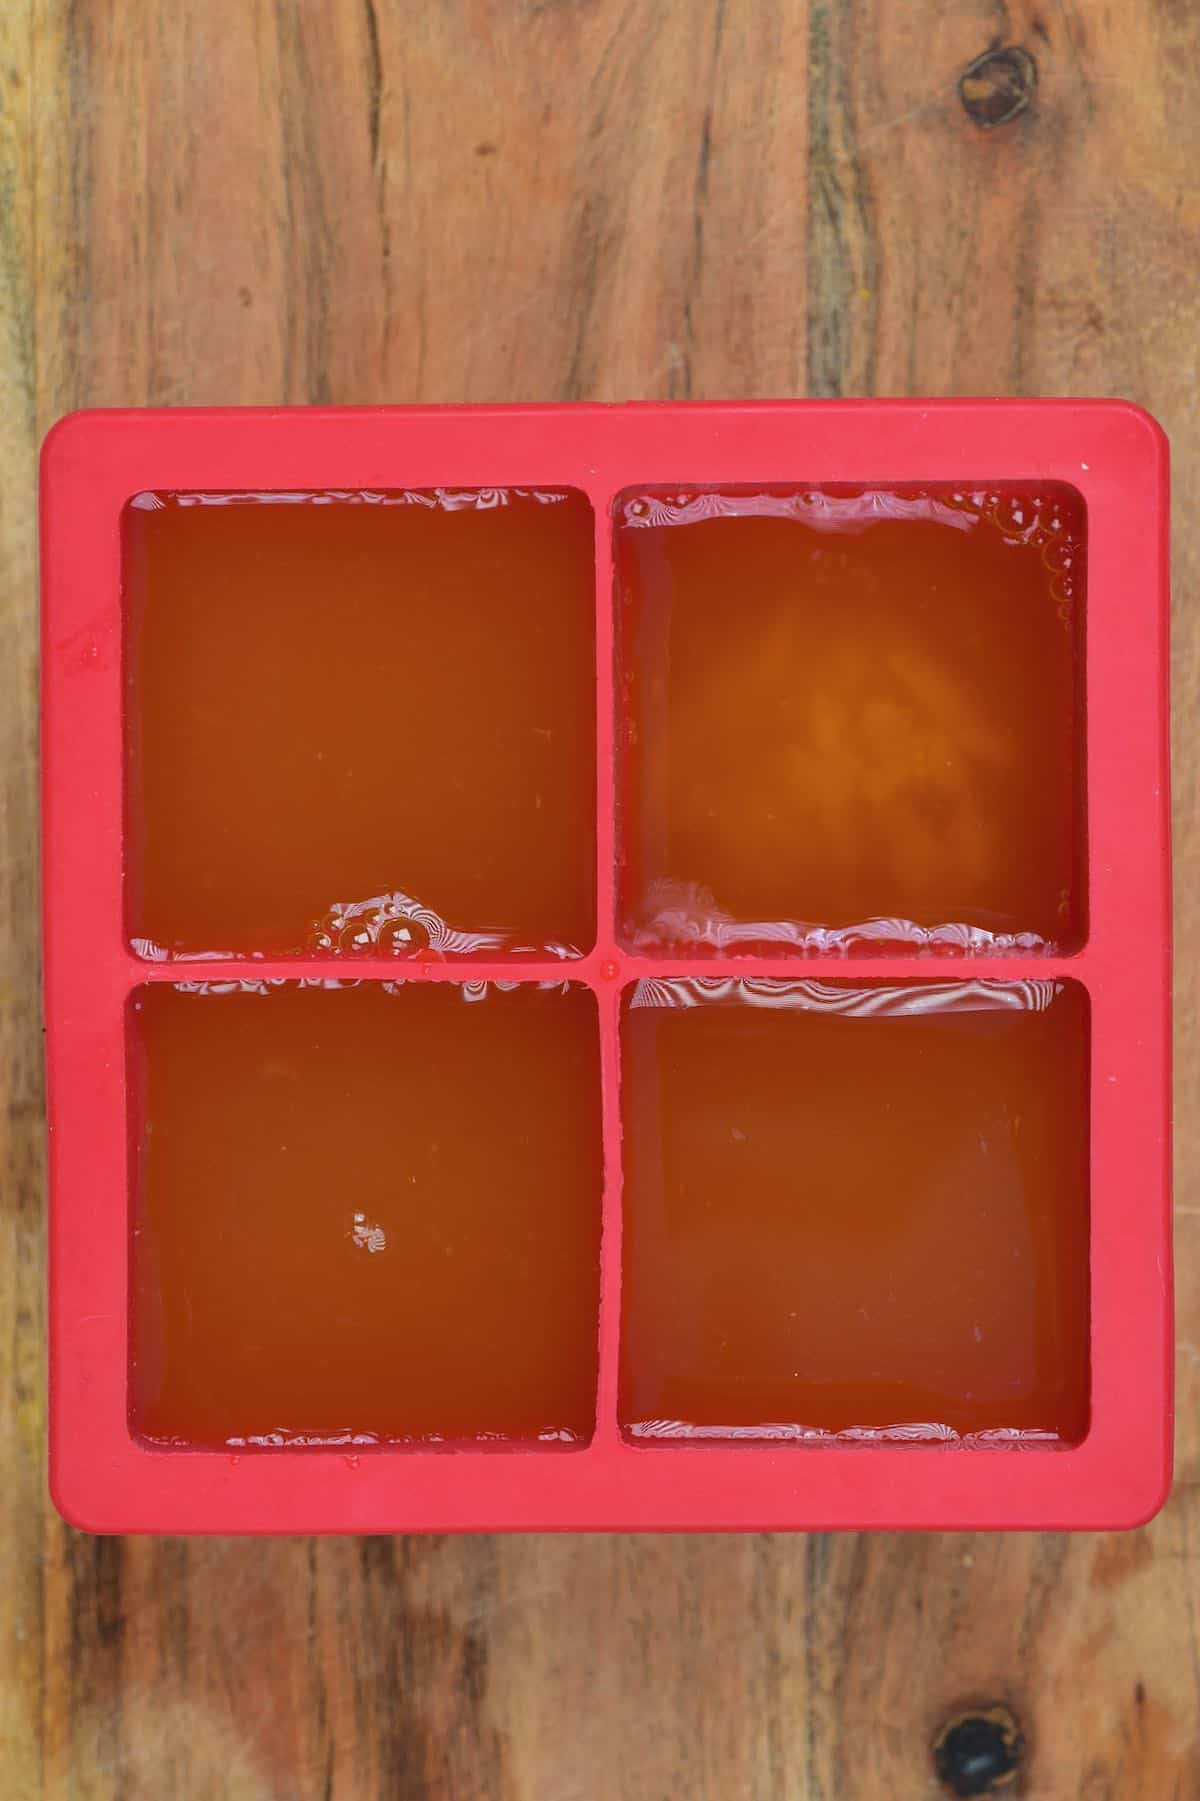 Ice cube tray with pineapple tea